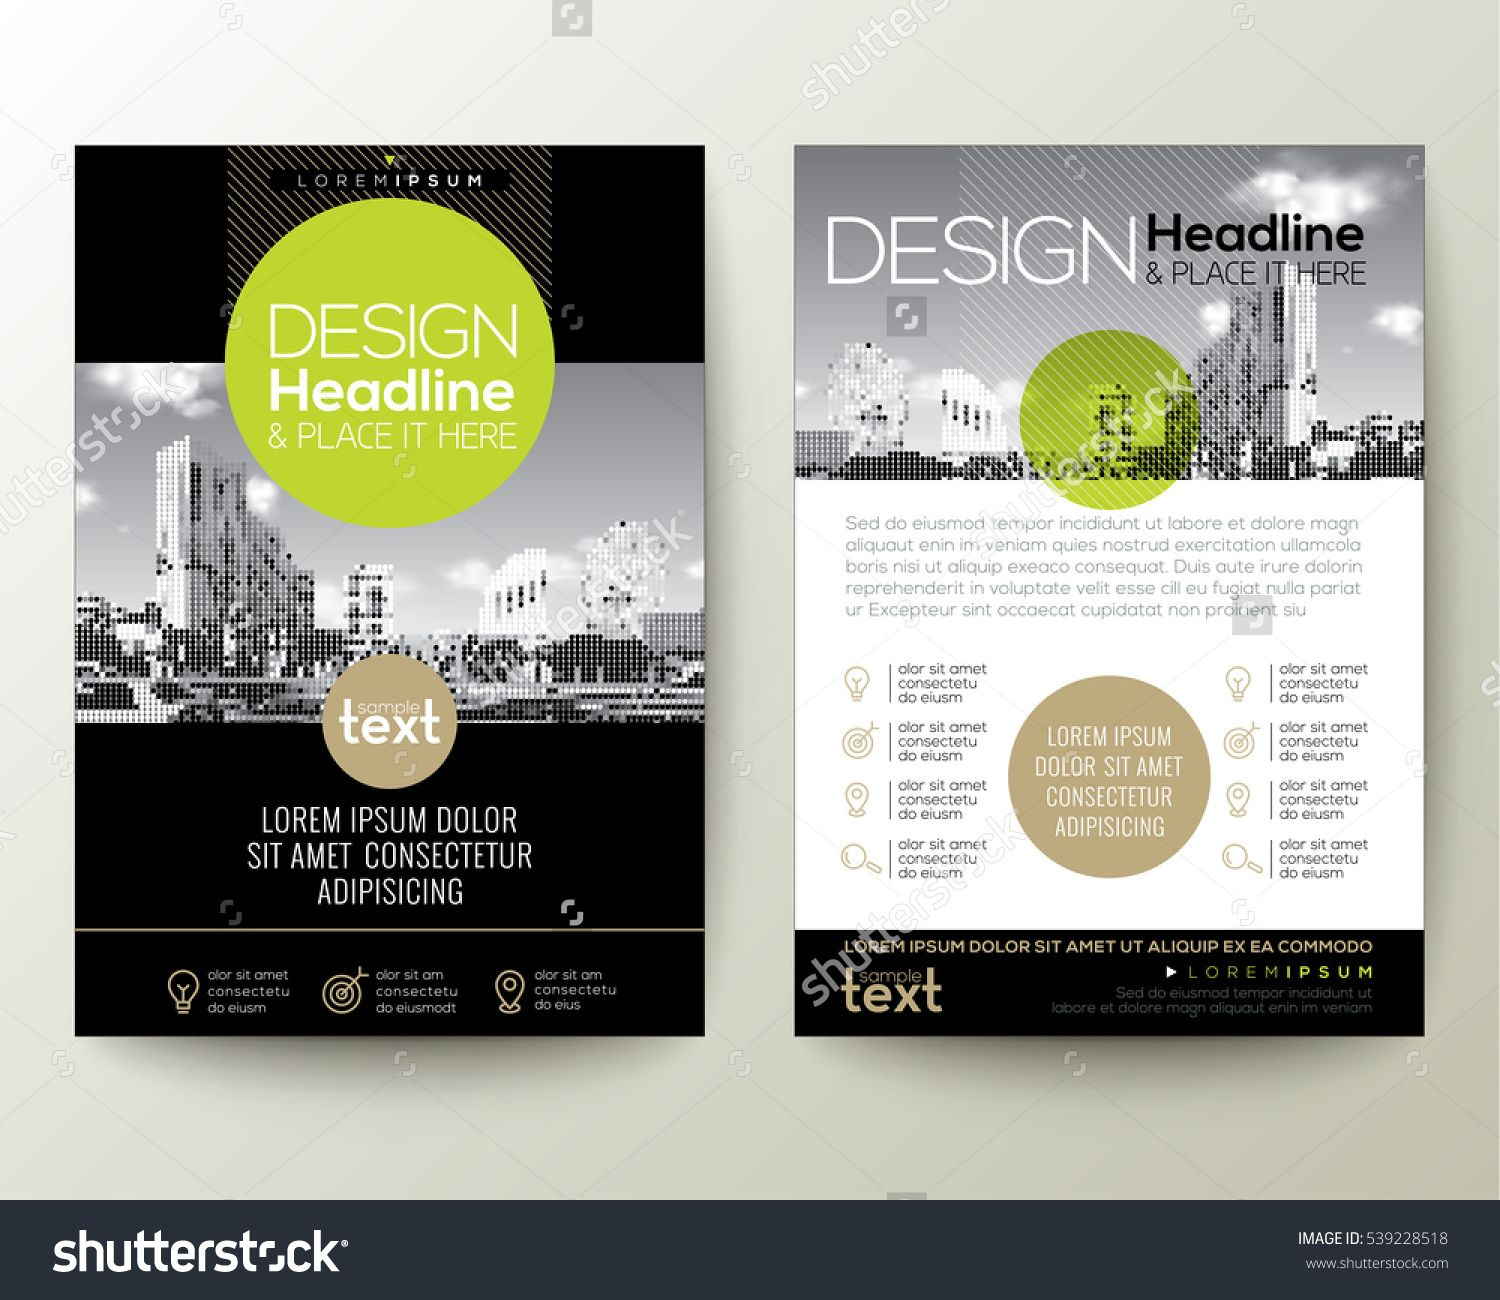 Poster design layout ideas - Poster Flyer Pamphlet Brochure Cover Design Layout With Circle Shape Graphic Elements And Space For Photo